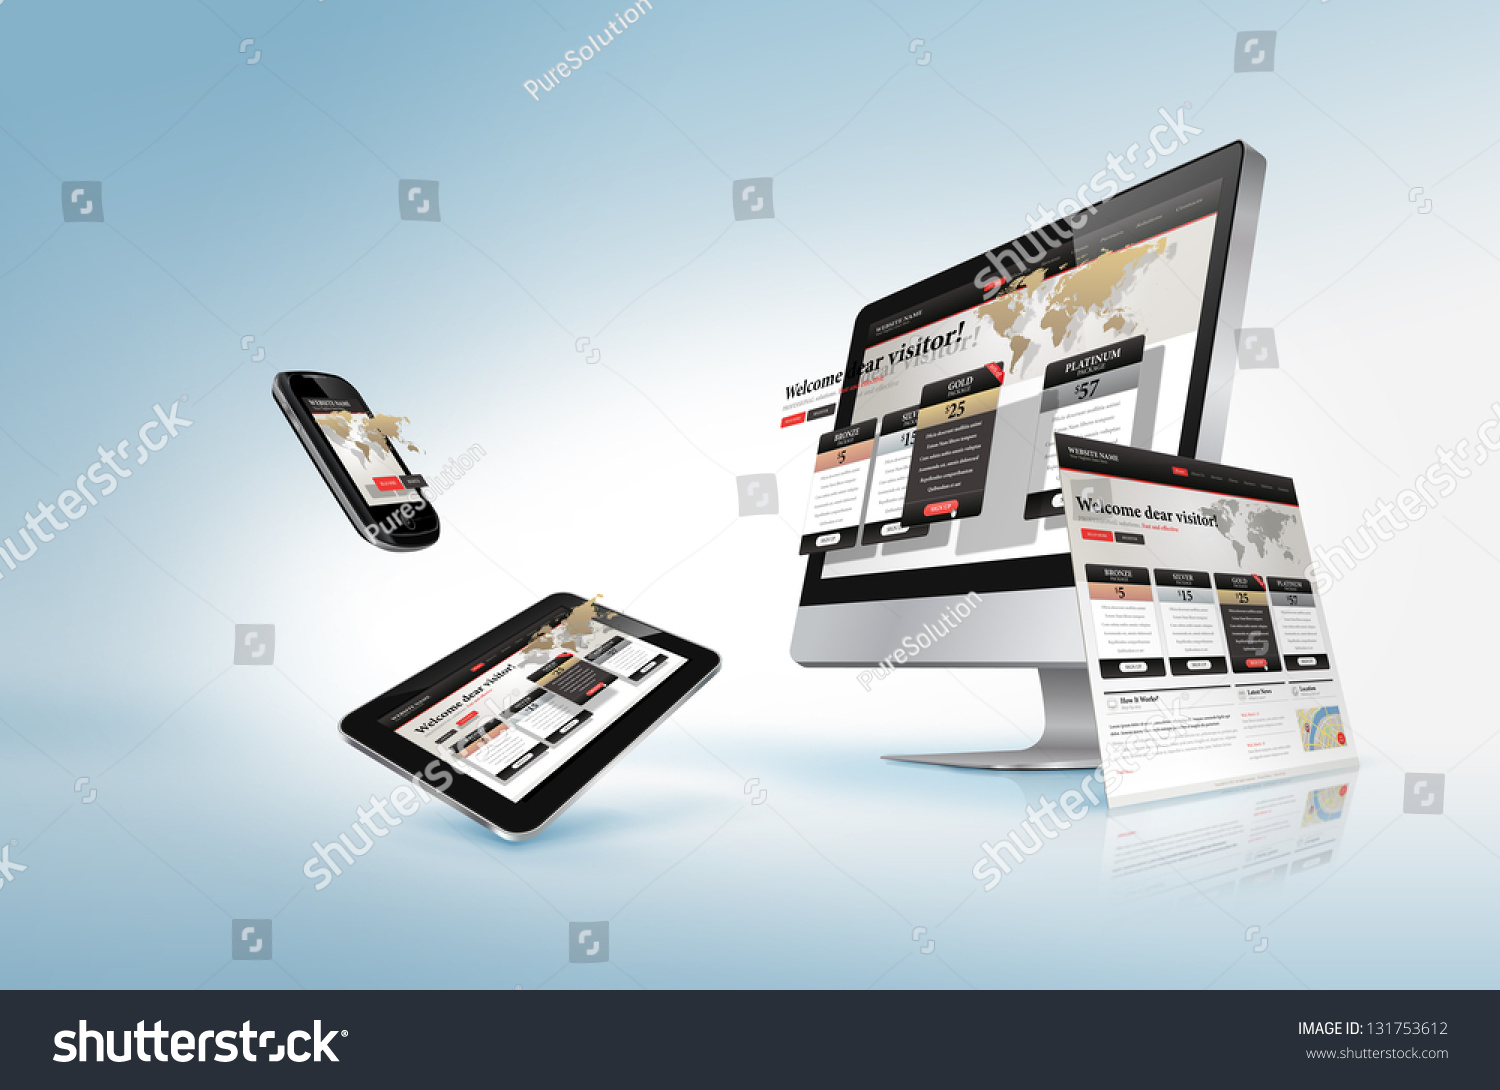 Start your ecommerce Web Site and sell it after getting a high popularity. Learn Web Concepts like How it Works, Browser Types, Server Types, Site Advantages, Skills Required, Tools Required, Domain Names, Site Construction, Hosting Concepts, Ecommerce Hosting, .